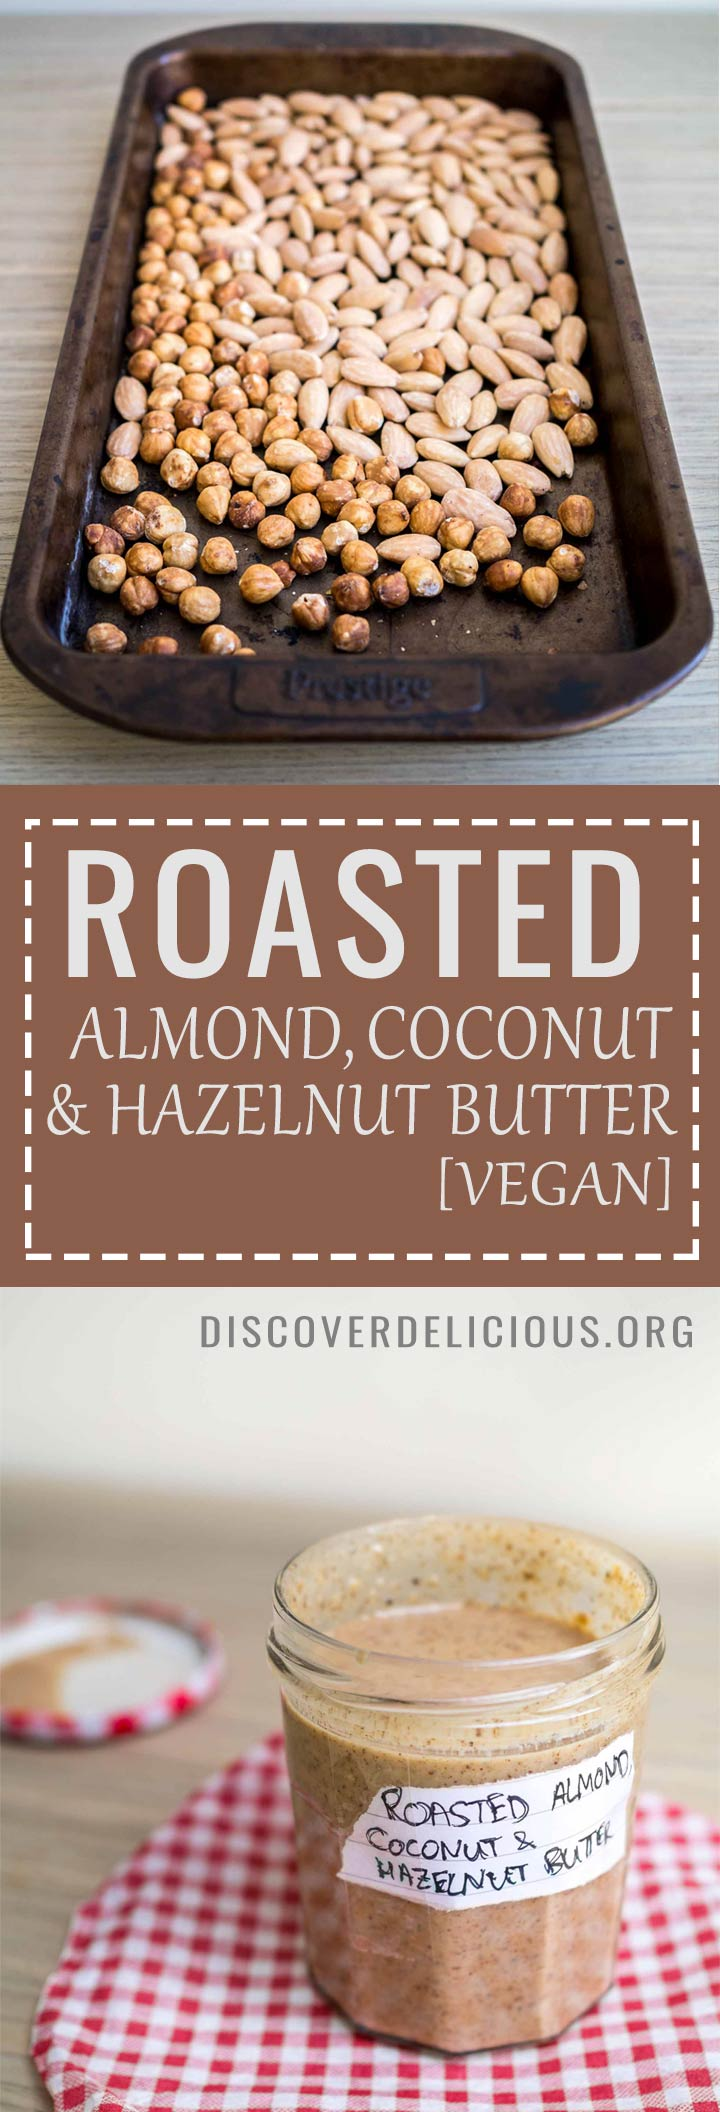 Roasted Almond, Coconut & Hazelnut Butter | Discover Delicious | Vegan Food Blog | www.discoverdelicious.org